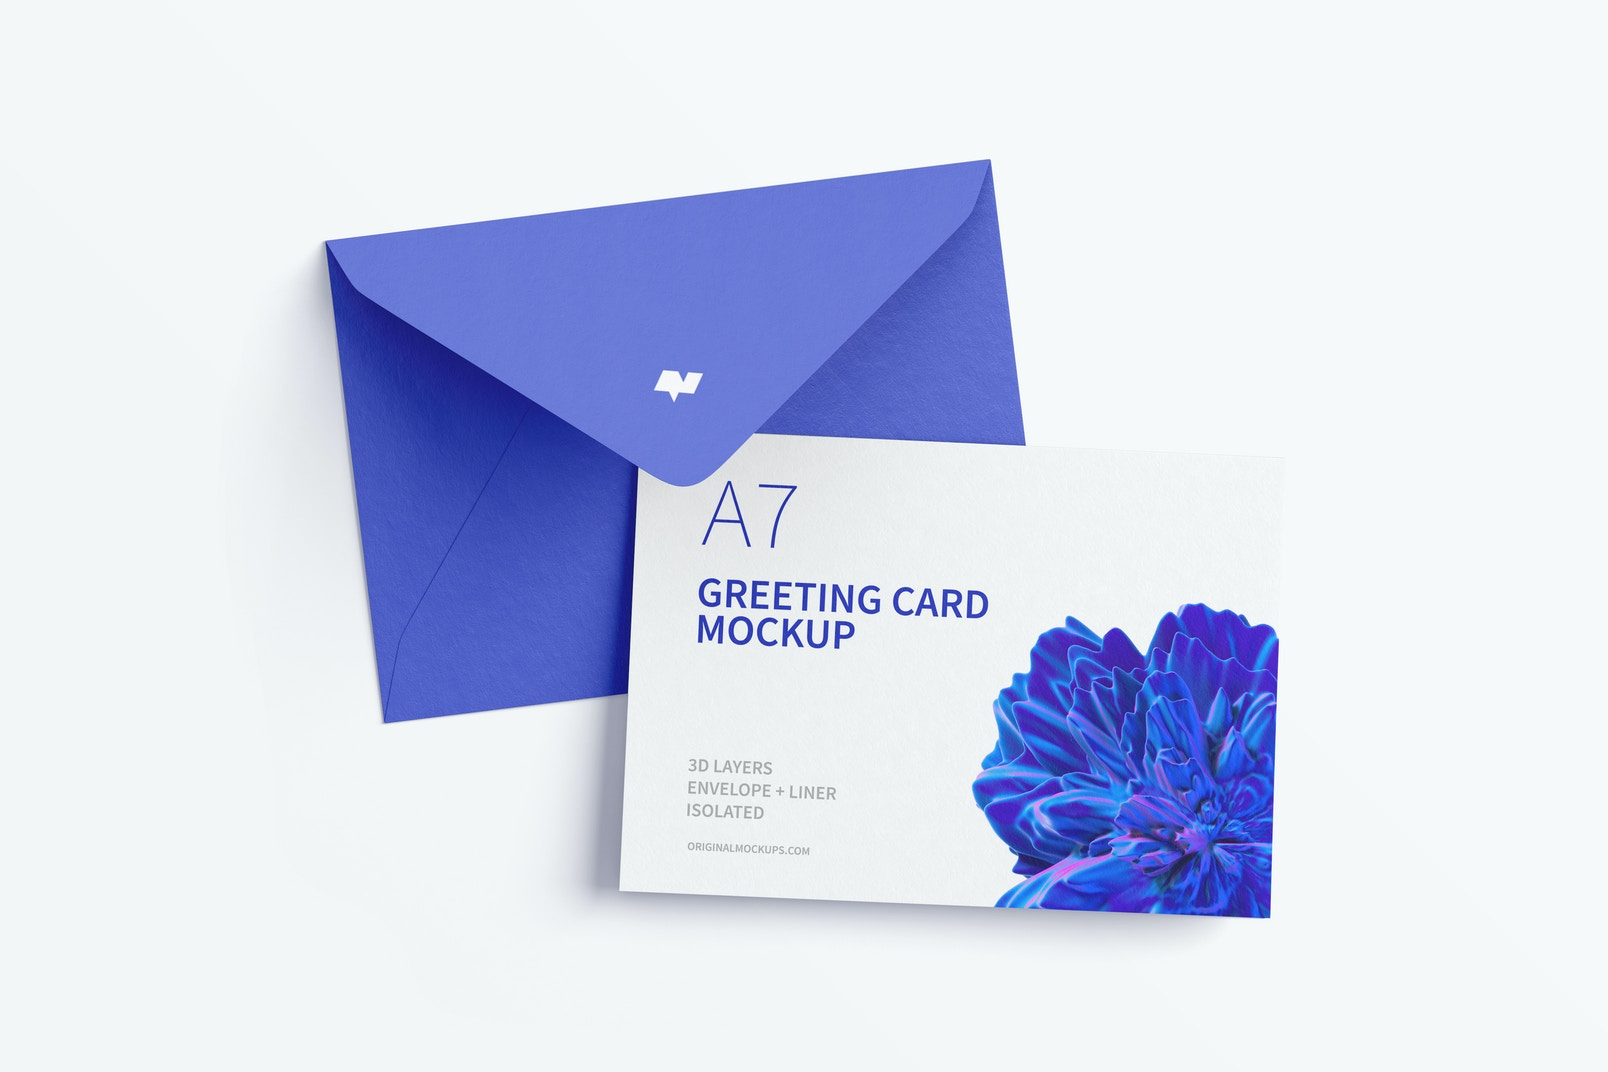 Landscape A7 Greeting Card Mockup with Envelope, Top View